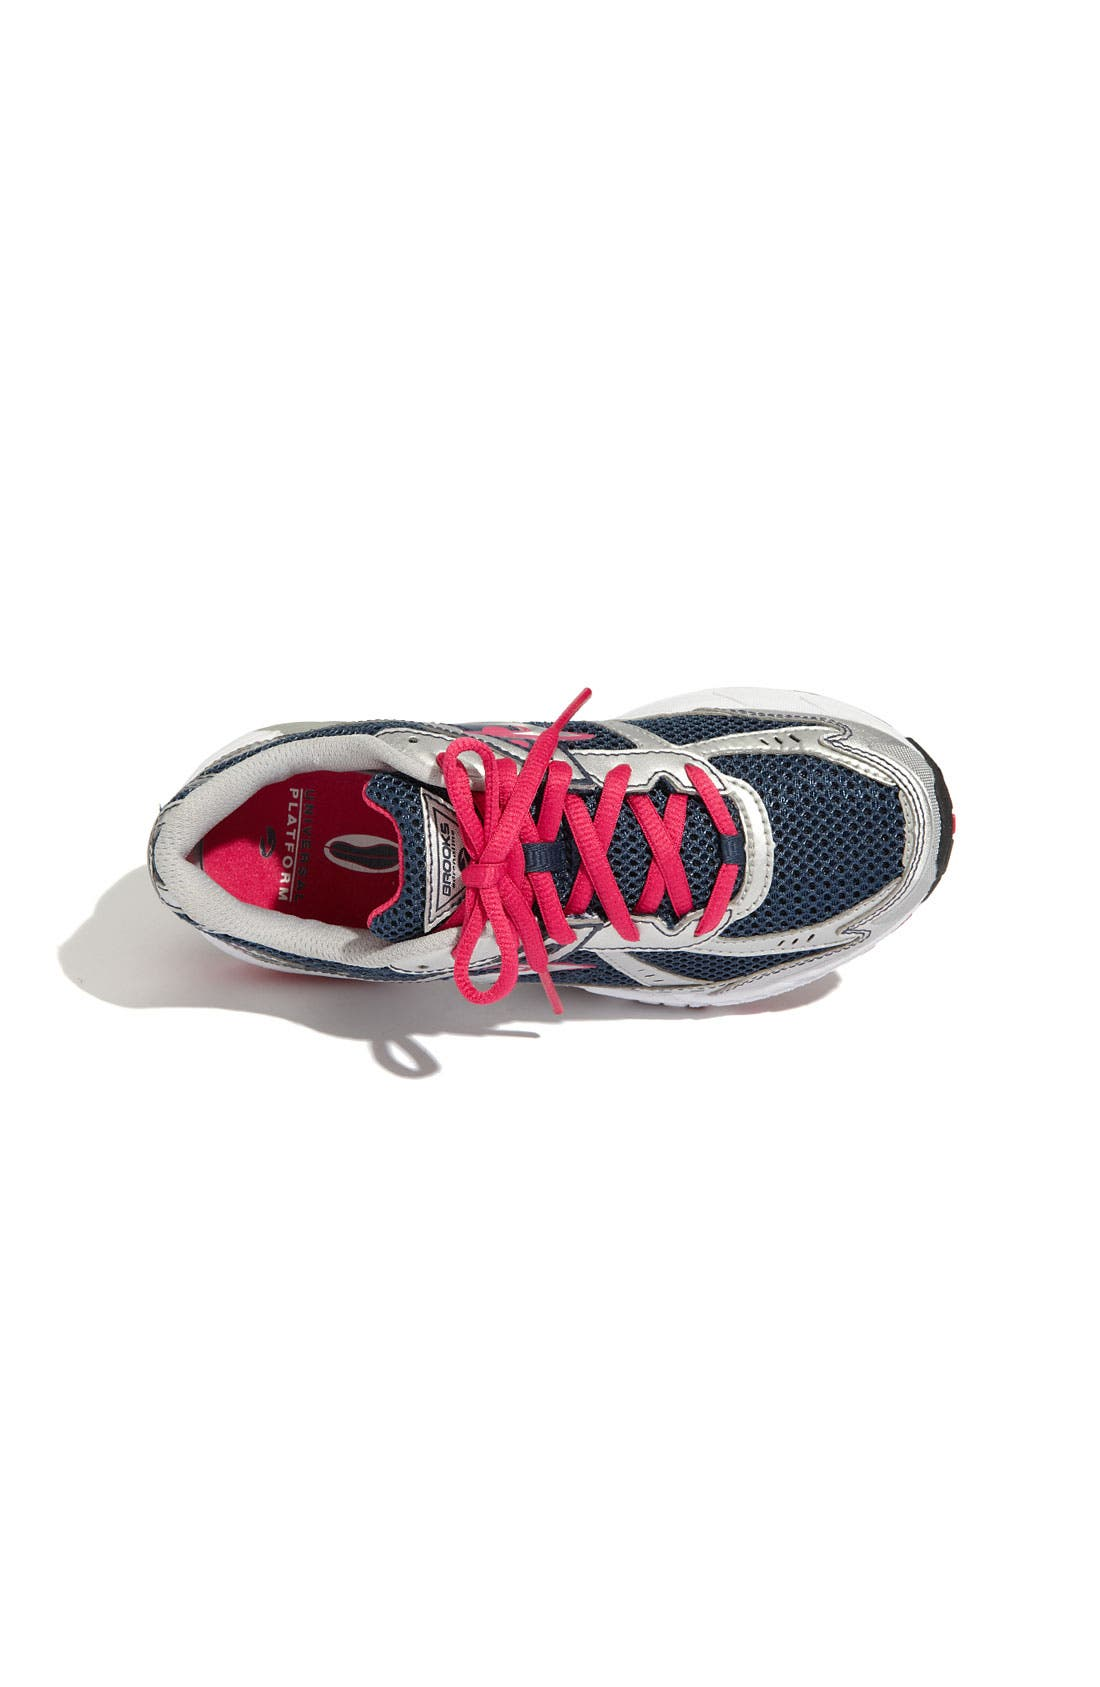 BROOKS,                             'Adrenaline' Running Shoe,                             Alternate thumbnail 6, color,                             020